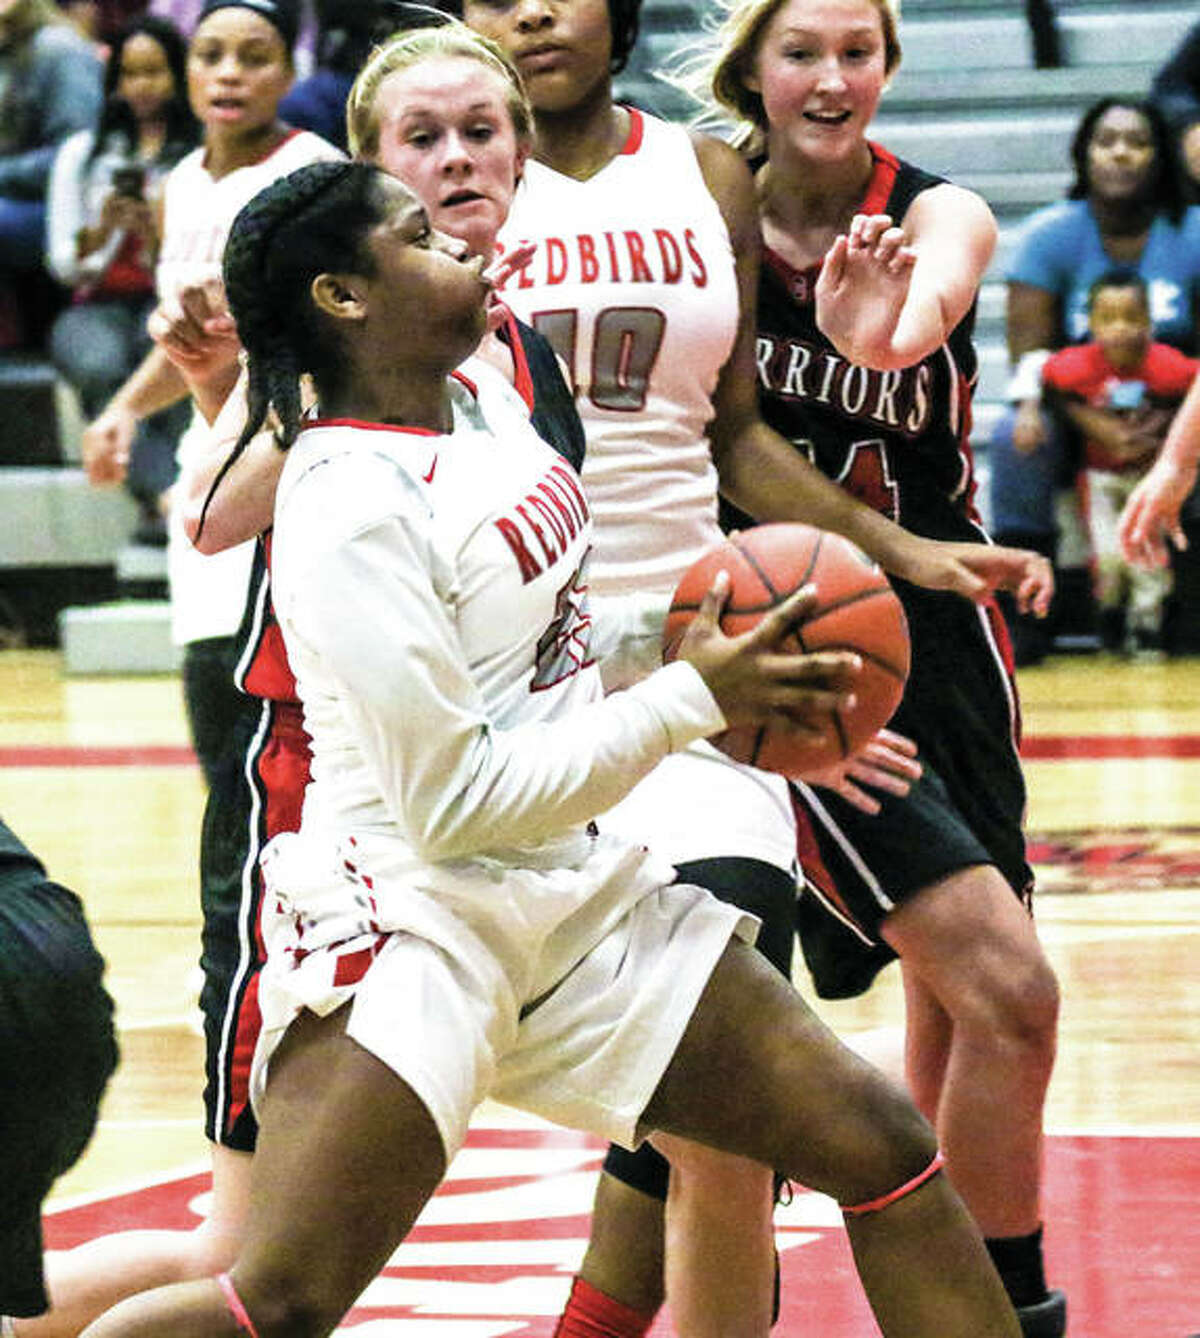 Alton's Haninah Hamilton (front) goes up for a shot during a game against Calhoun in the Alton Tip-Off Classic tournament on Nov. 15 at Alton High in Godfrey. The Redbirds were on the road Thursday night and snapped a 36-game Southwestern Conference losing streak by beating the Warriors 46-22.